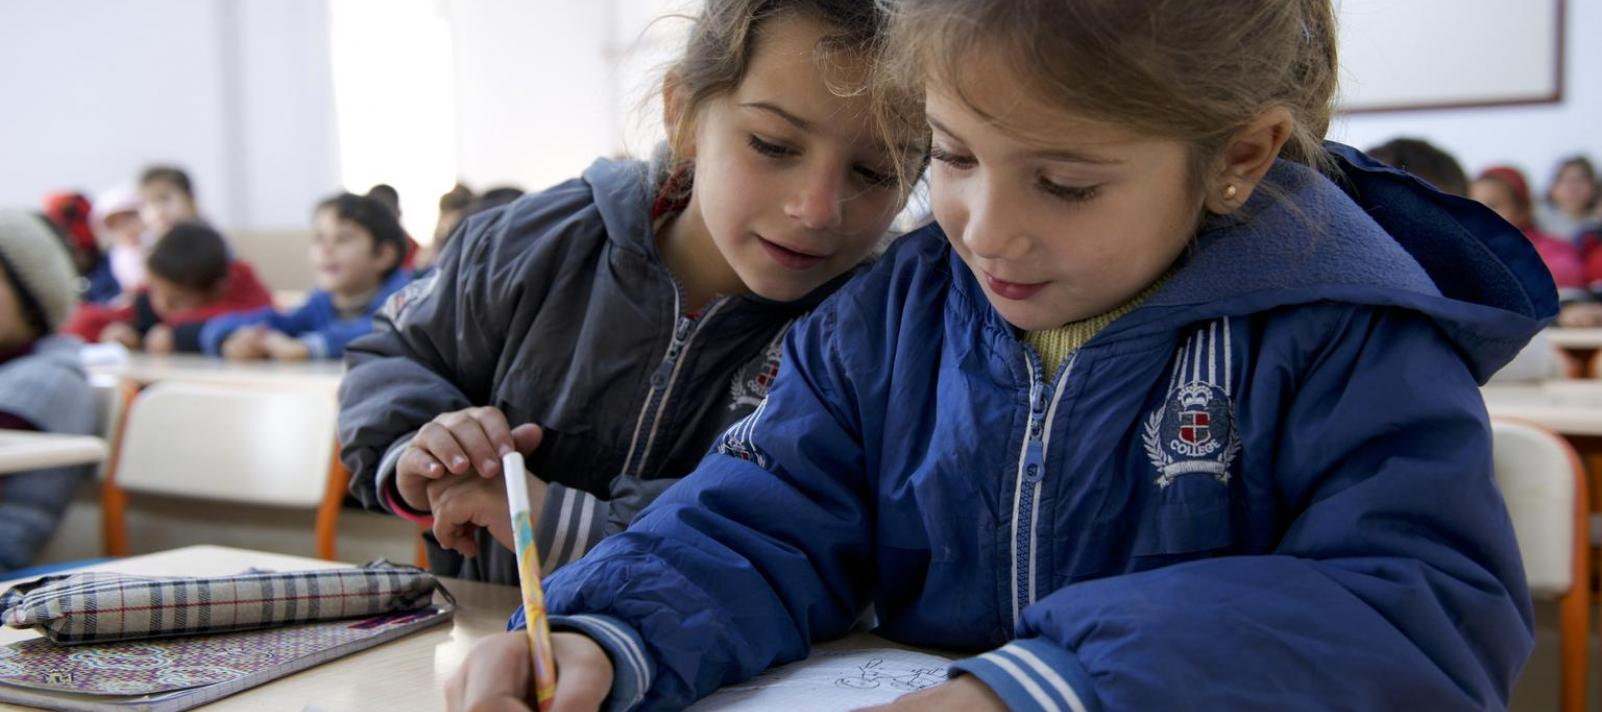 In Turkey, a girl looks over the shoulder of another girl, who is drawing, in their Grade 1 class at a UNICEF-supported school.